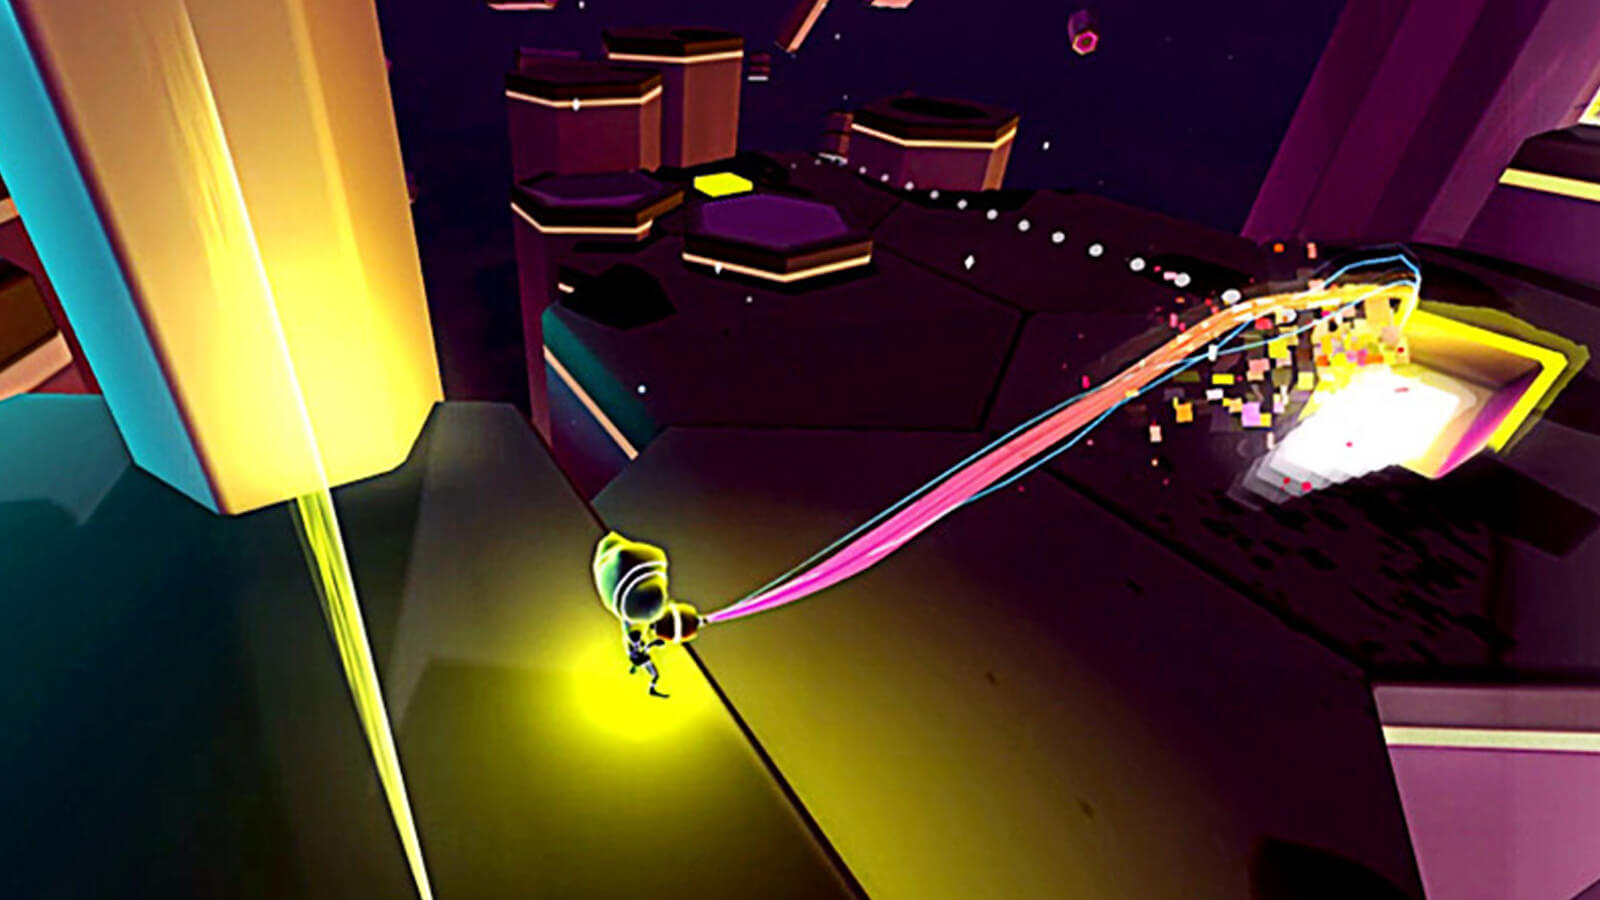 The player's weapon emanates a multicolored ray at a block of glowing material